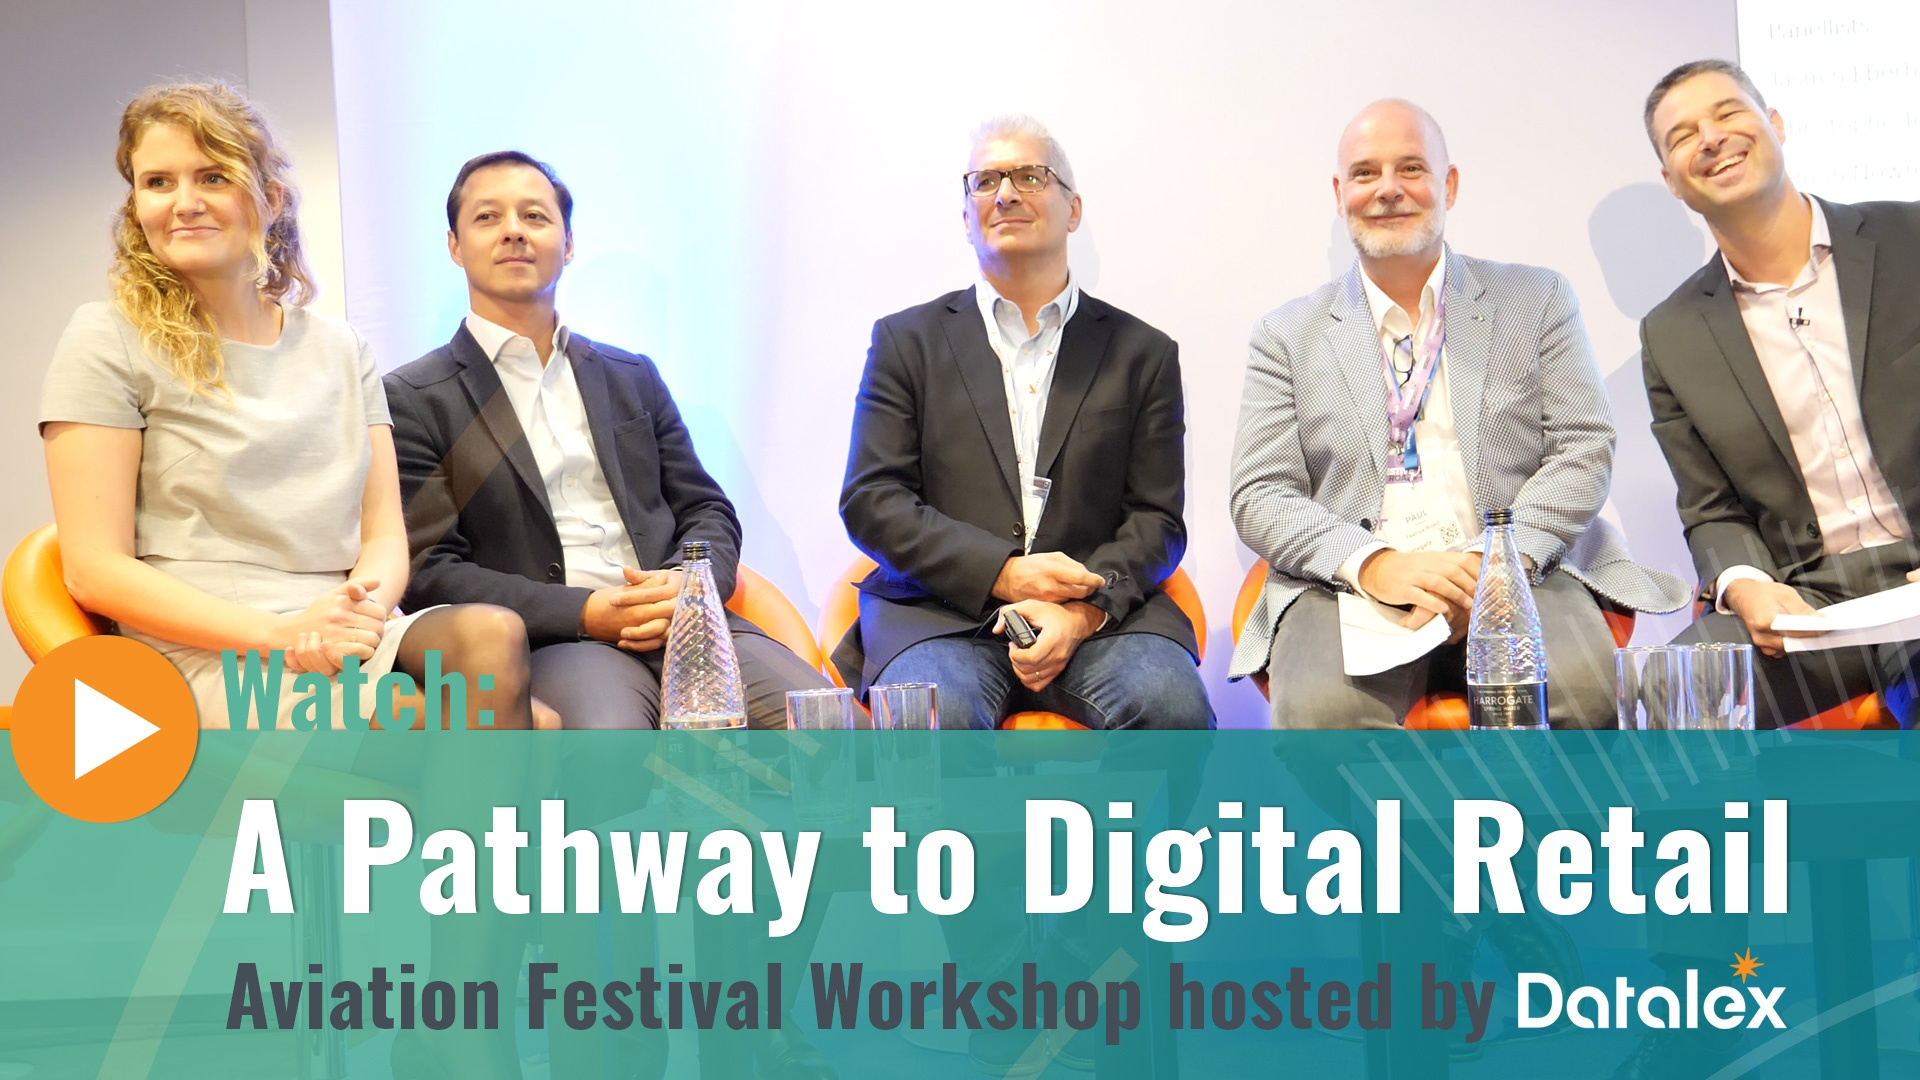 Video: A Pathway to Digital Retail - Datalex Workshop at Aviation Festival 2018